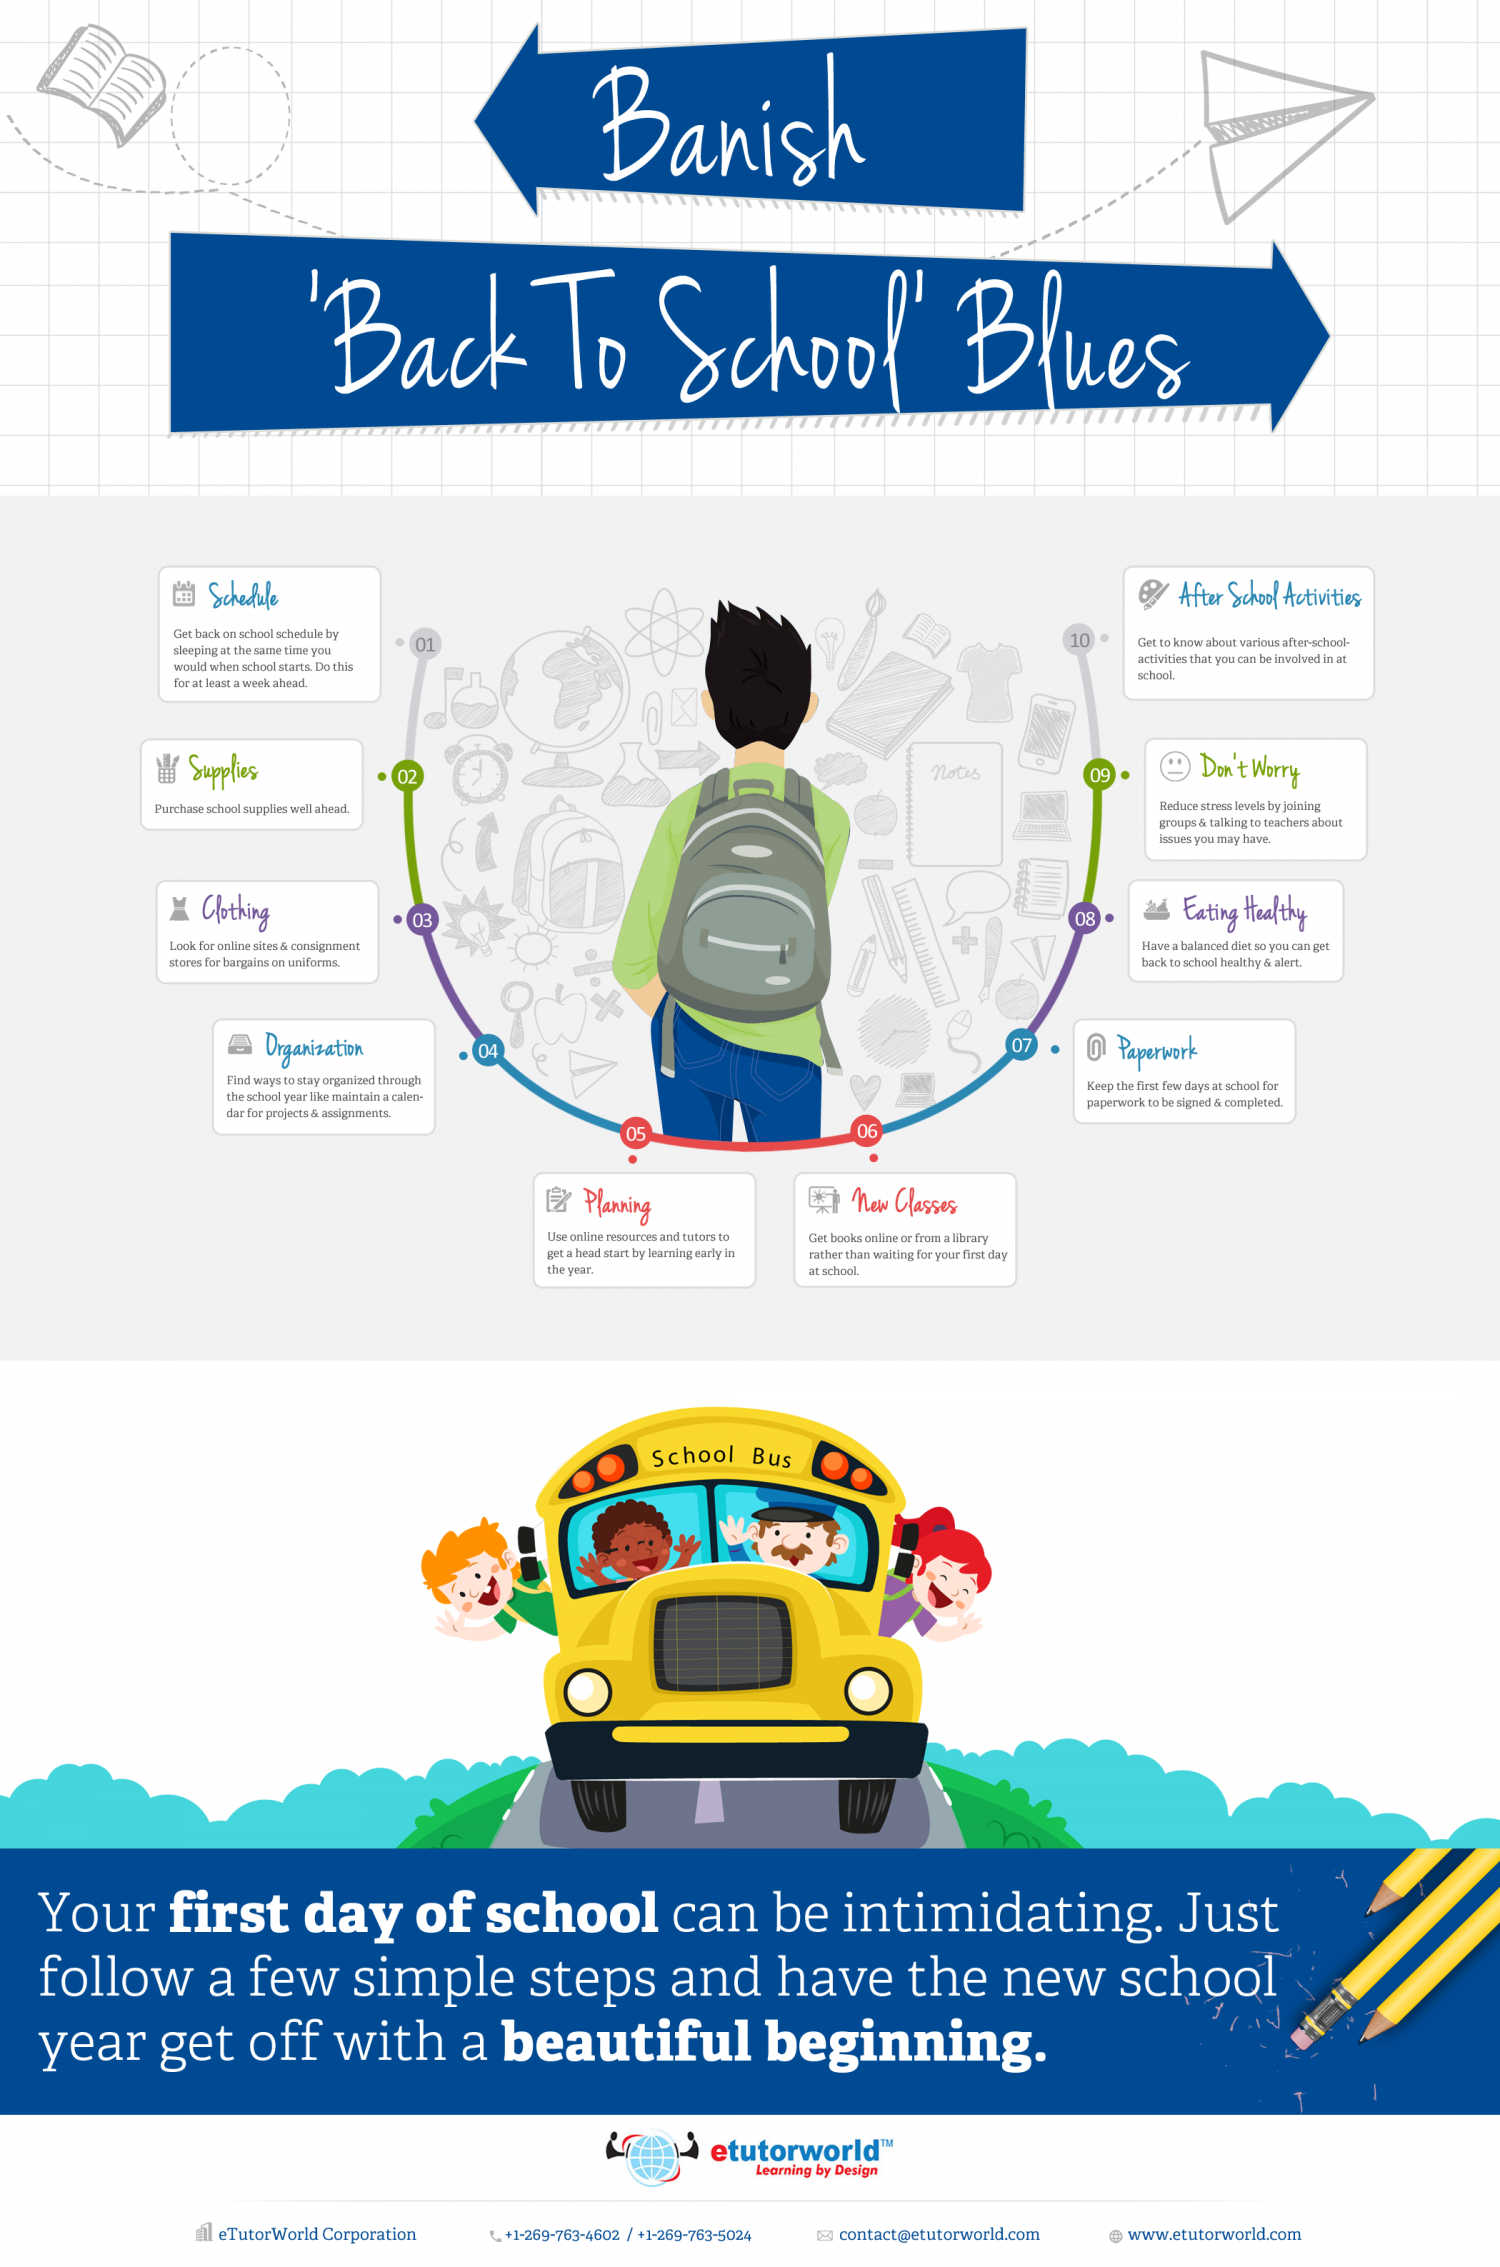 Banish 'Back To School' Blues Infographic